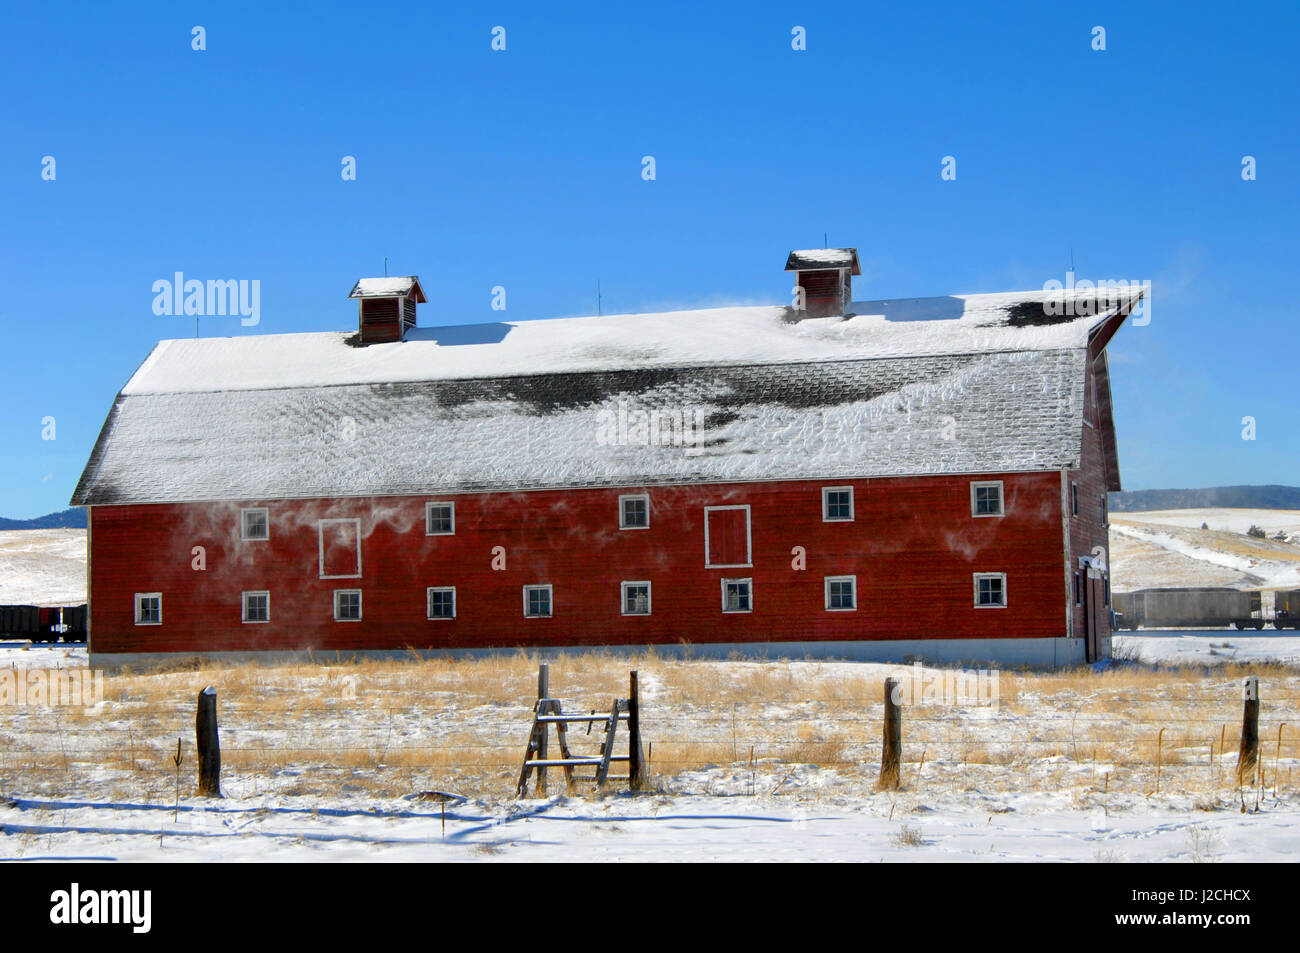 Snow blows from the rood of a red, wooden barn in a field in Colorado.  Coal train passes behind barn.  Barn is - Stock Image